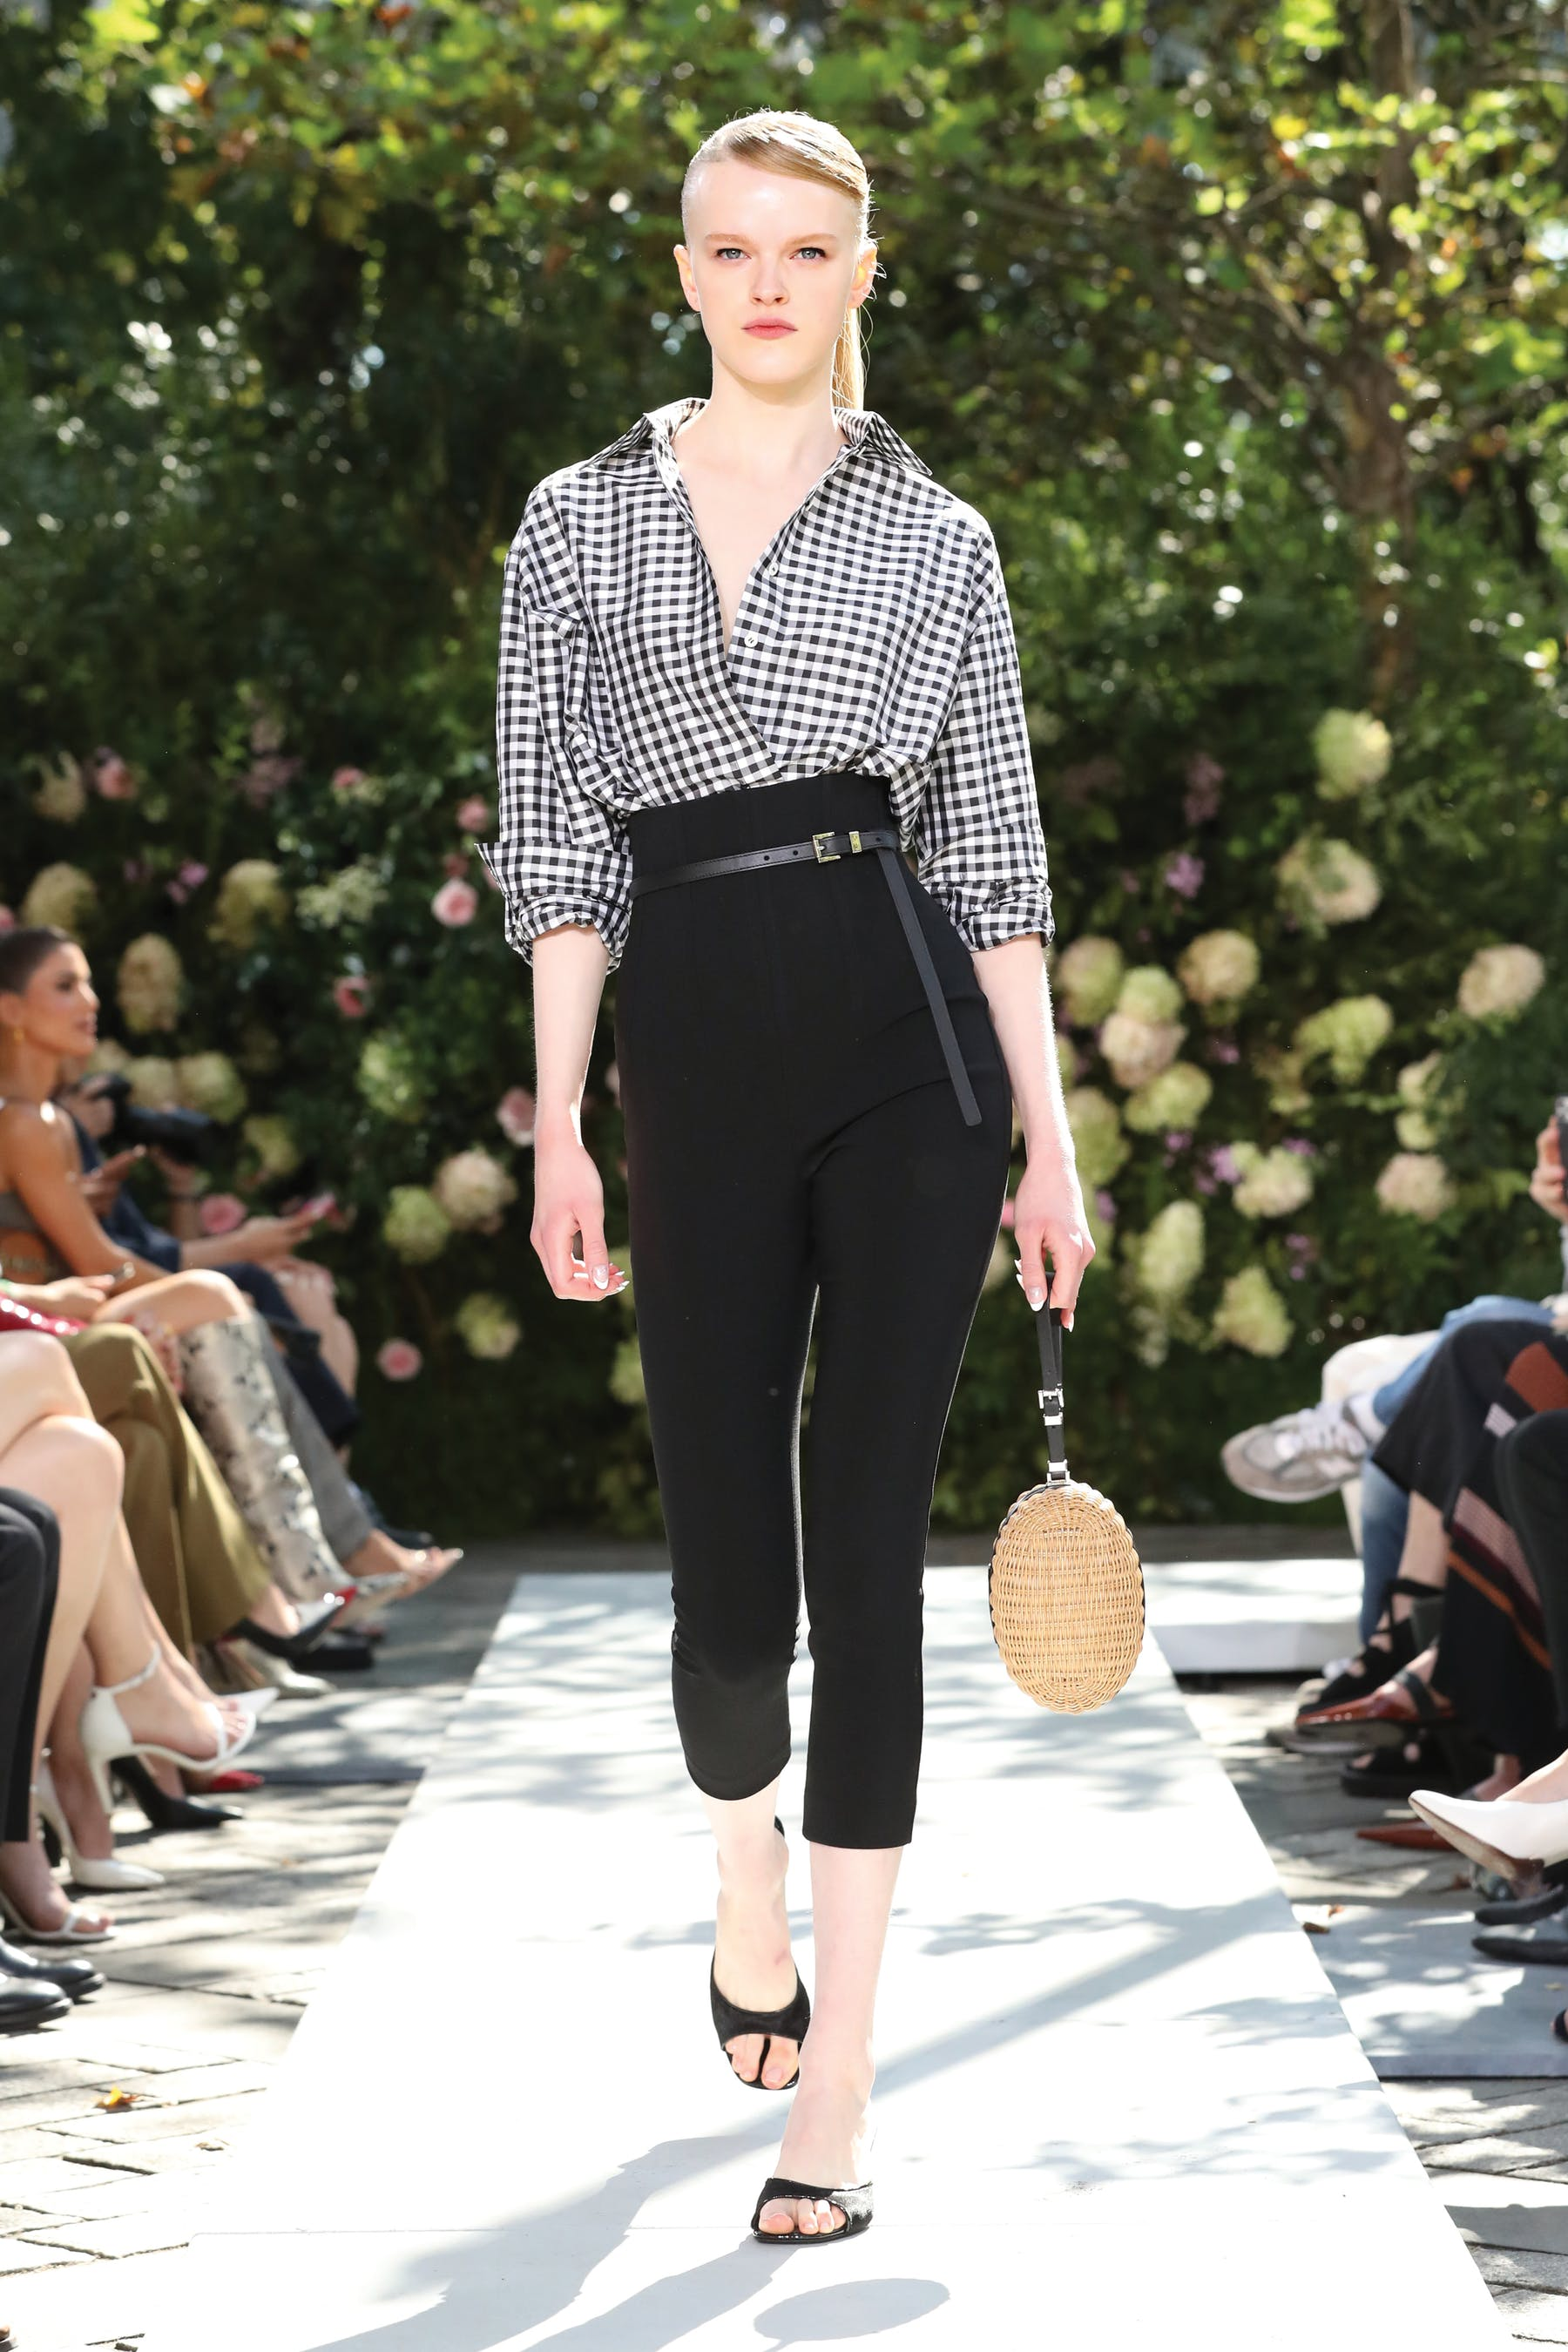 ss22-look-20